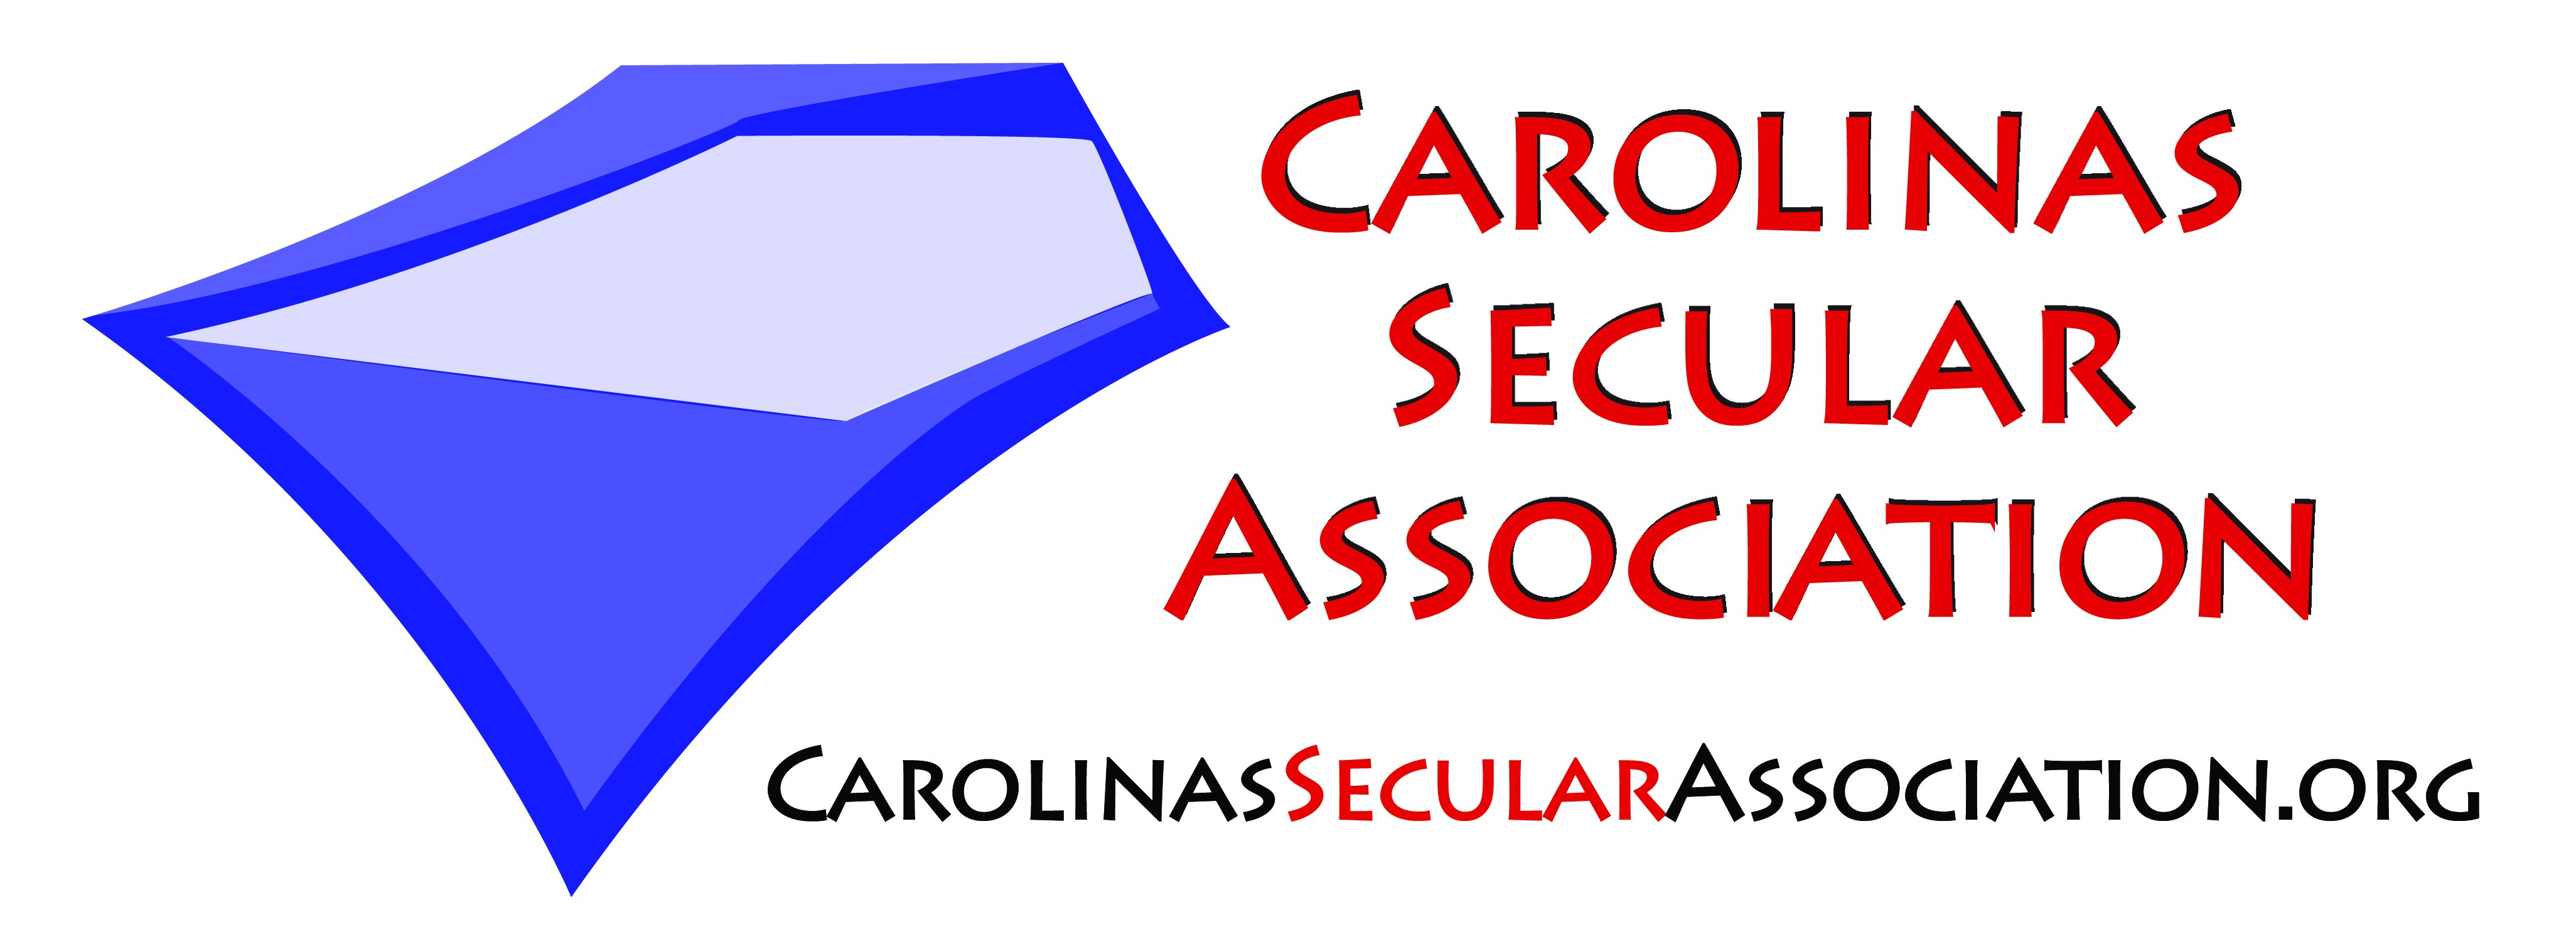 Carolinas Secular Association